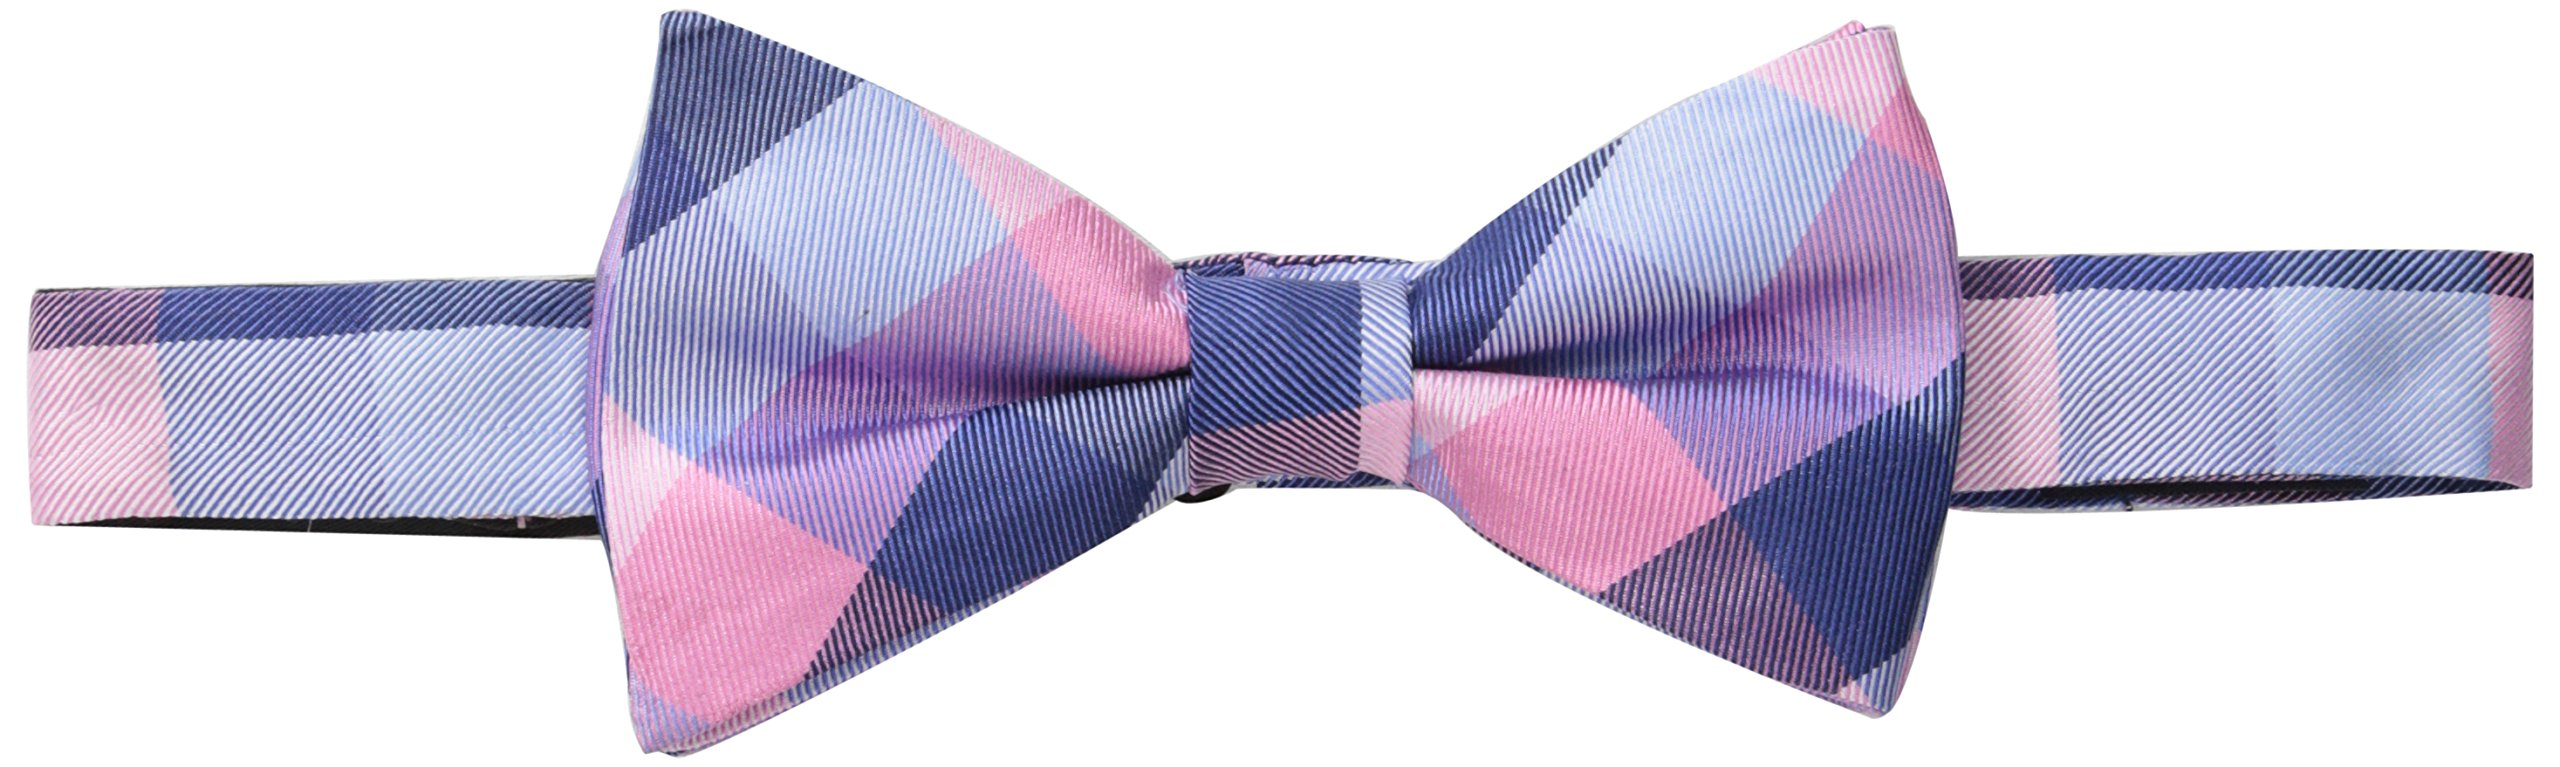 Tommy Hilfiger Men's Buffalo Tartan Pre-Tied Bow Tie, Pink, One Size